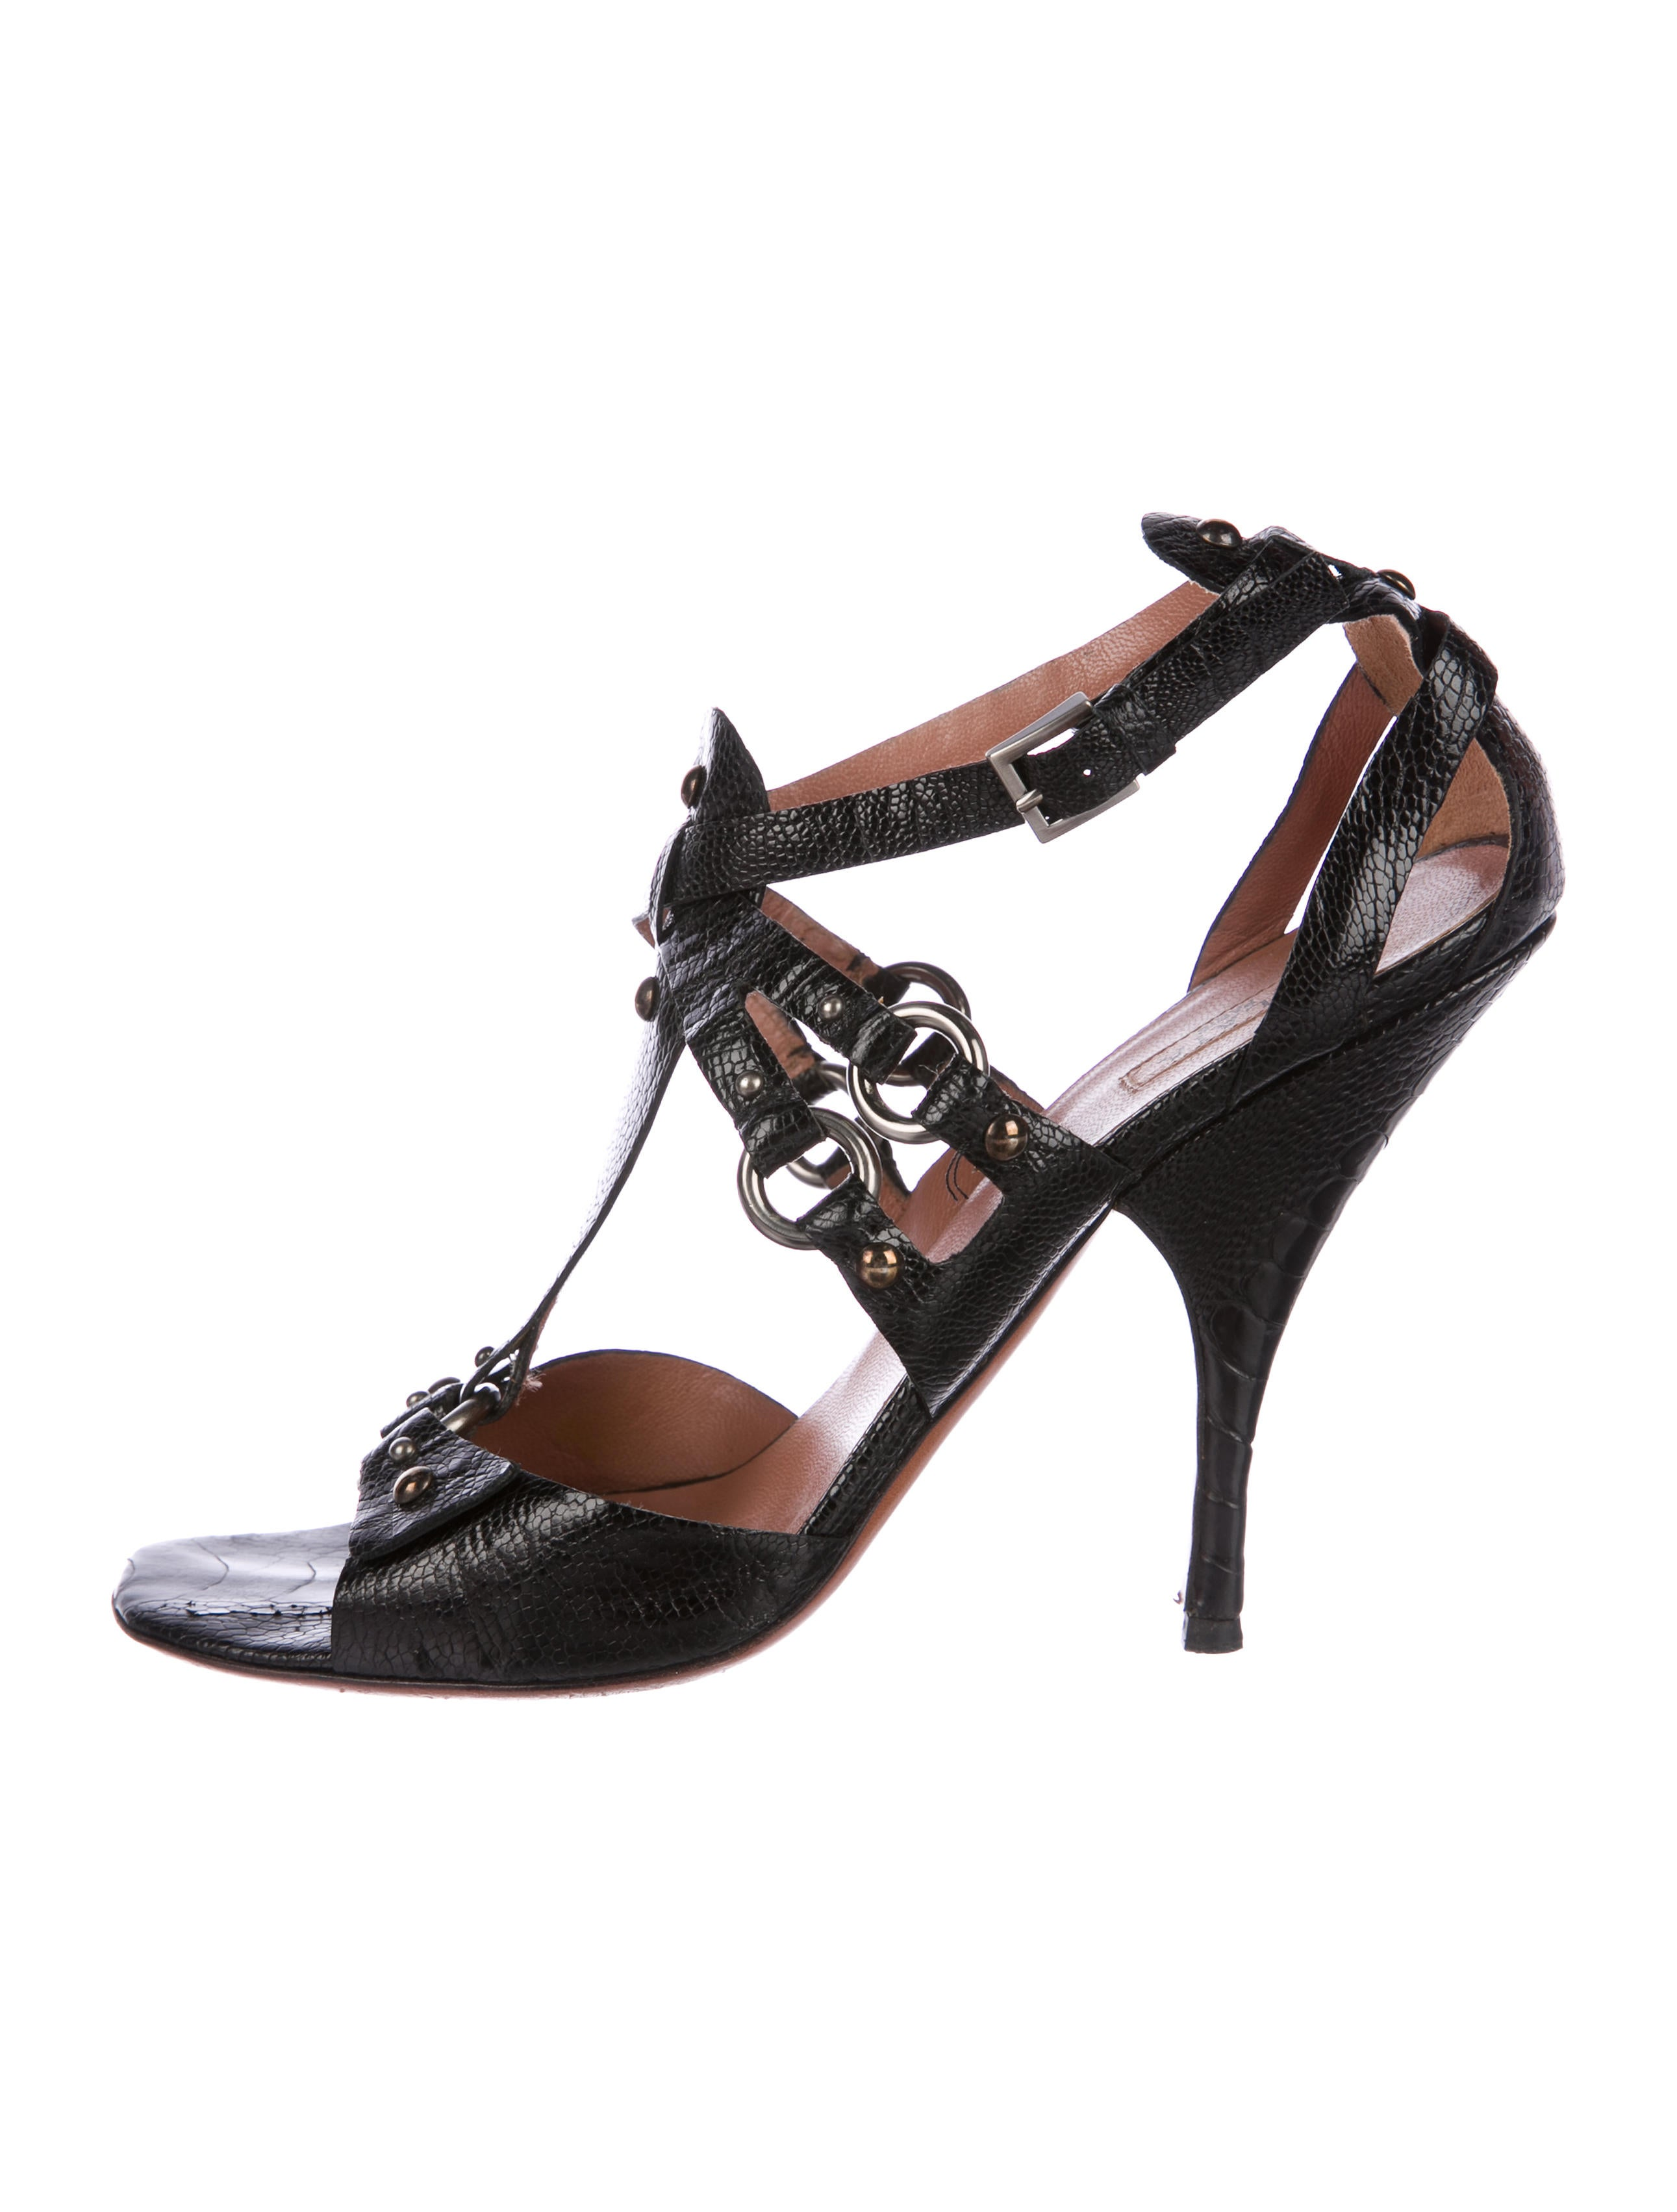 Alaïa Embossed Ankle Strap Sandals outlet ebay sale websites clearance low shipping discount Inexpensive cheap amazon MJs5VQN